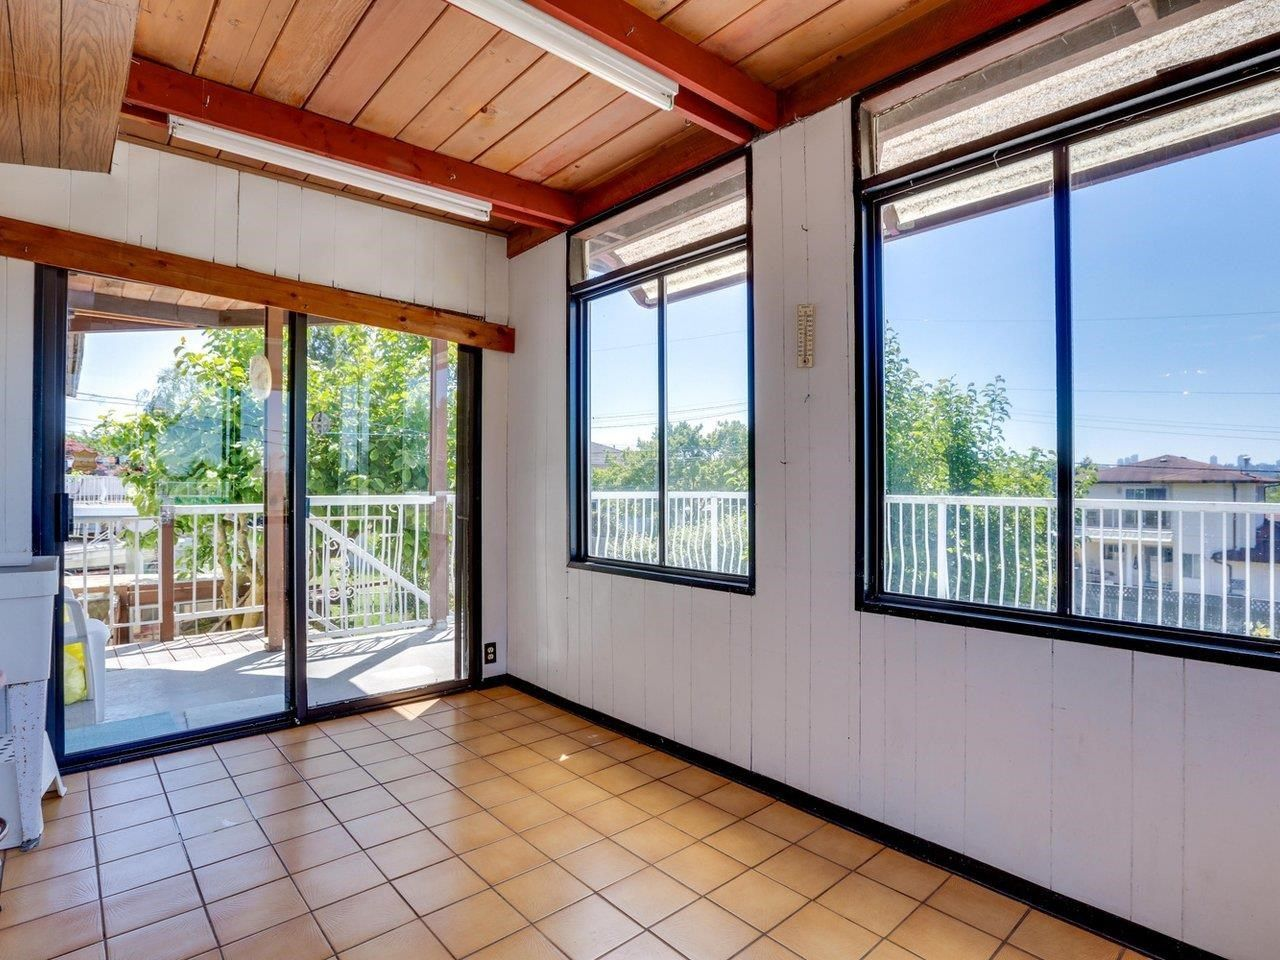 Photo 8: Photos: 6860 HYCREST Drive in Burnaby: Montecito House for sale (Burnaby North)  : MLS®# R2594917